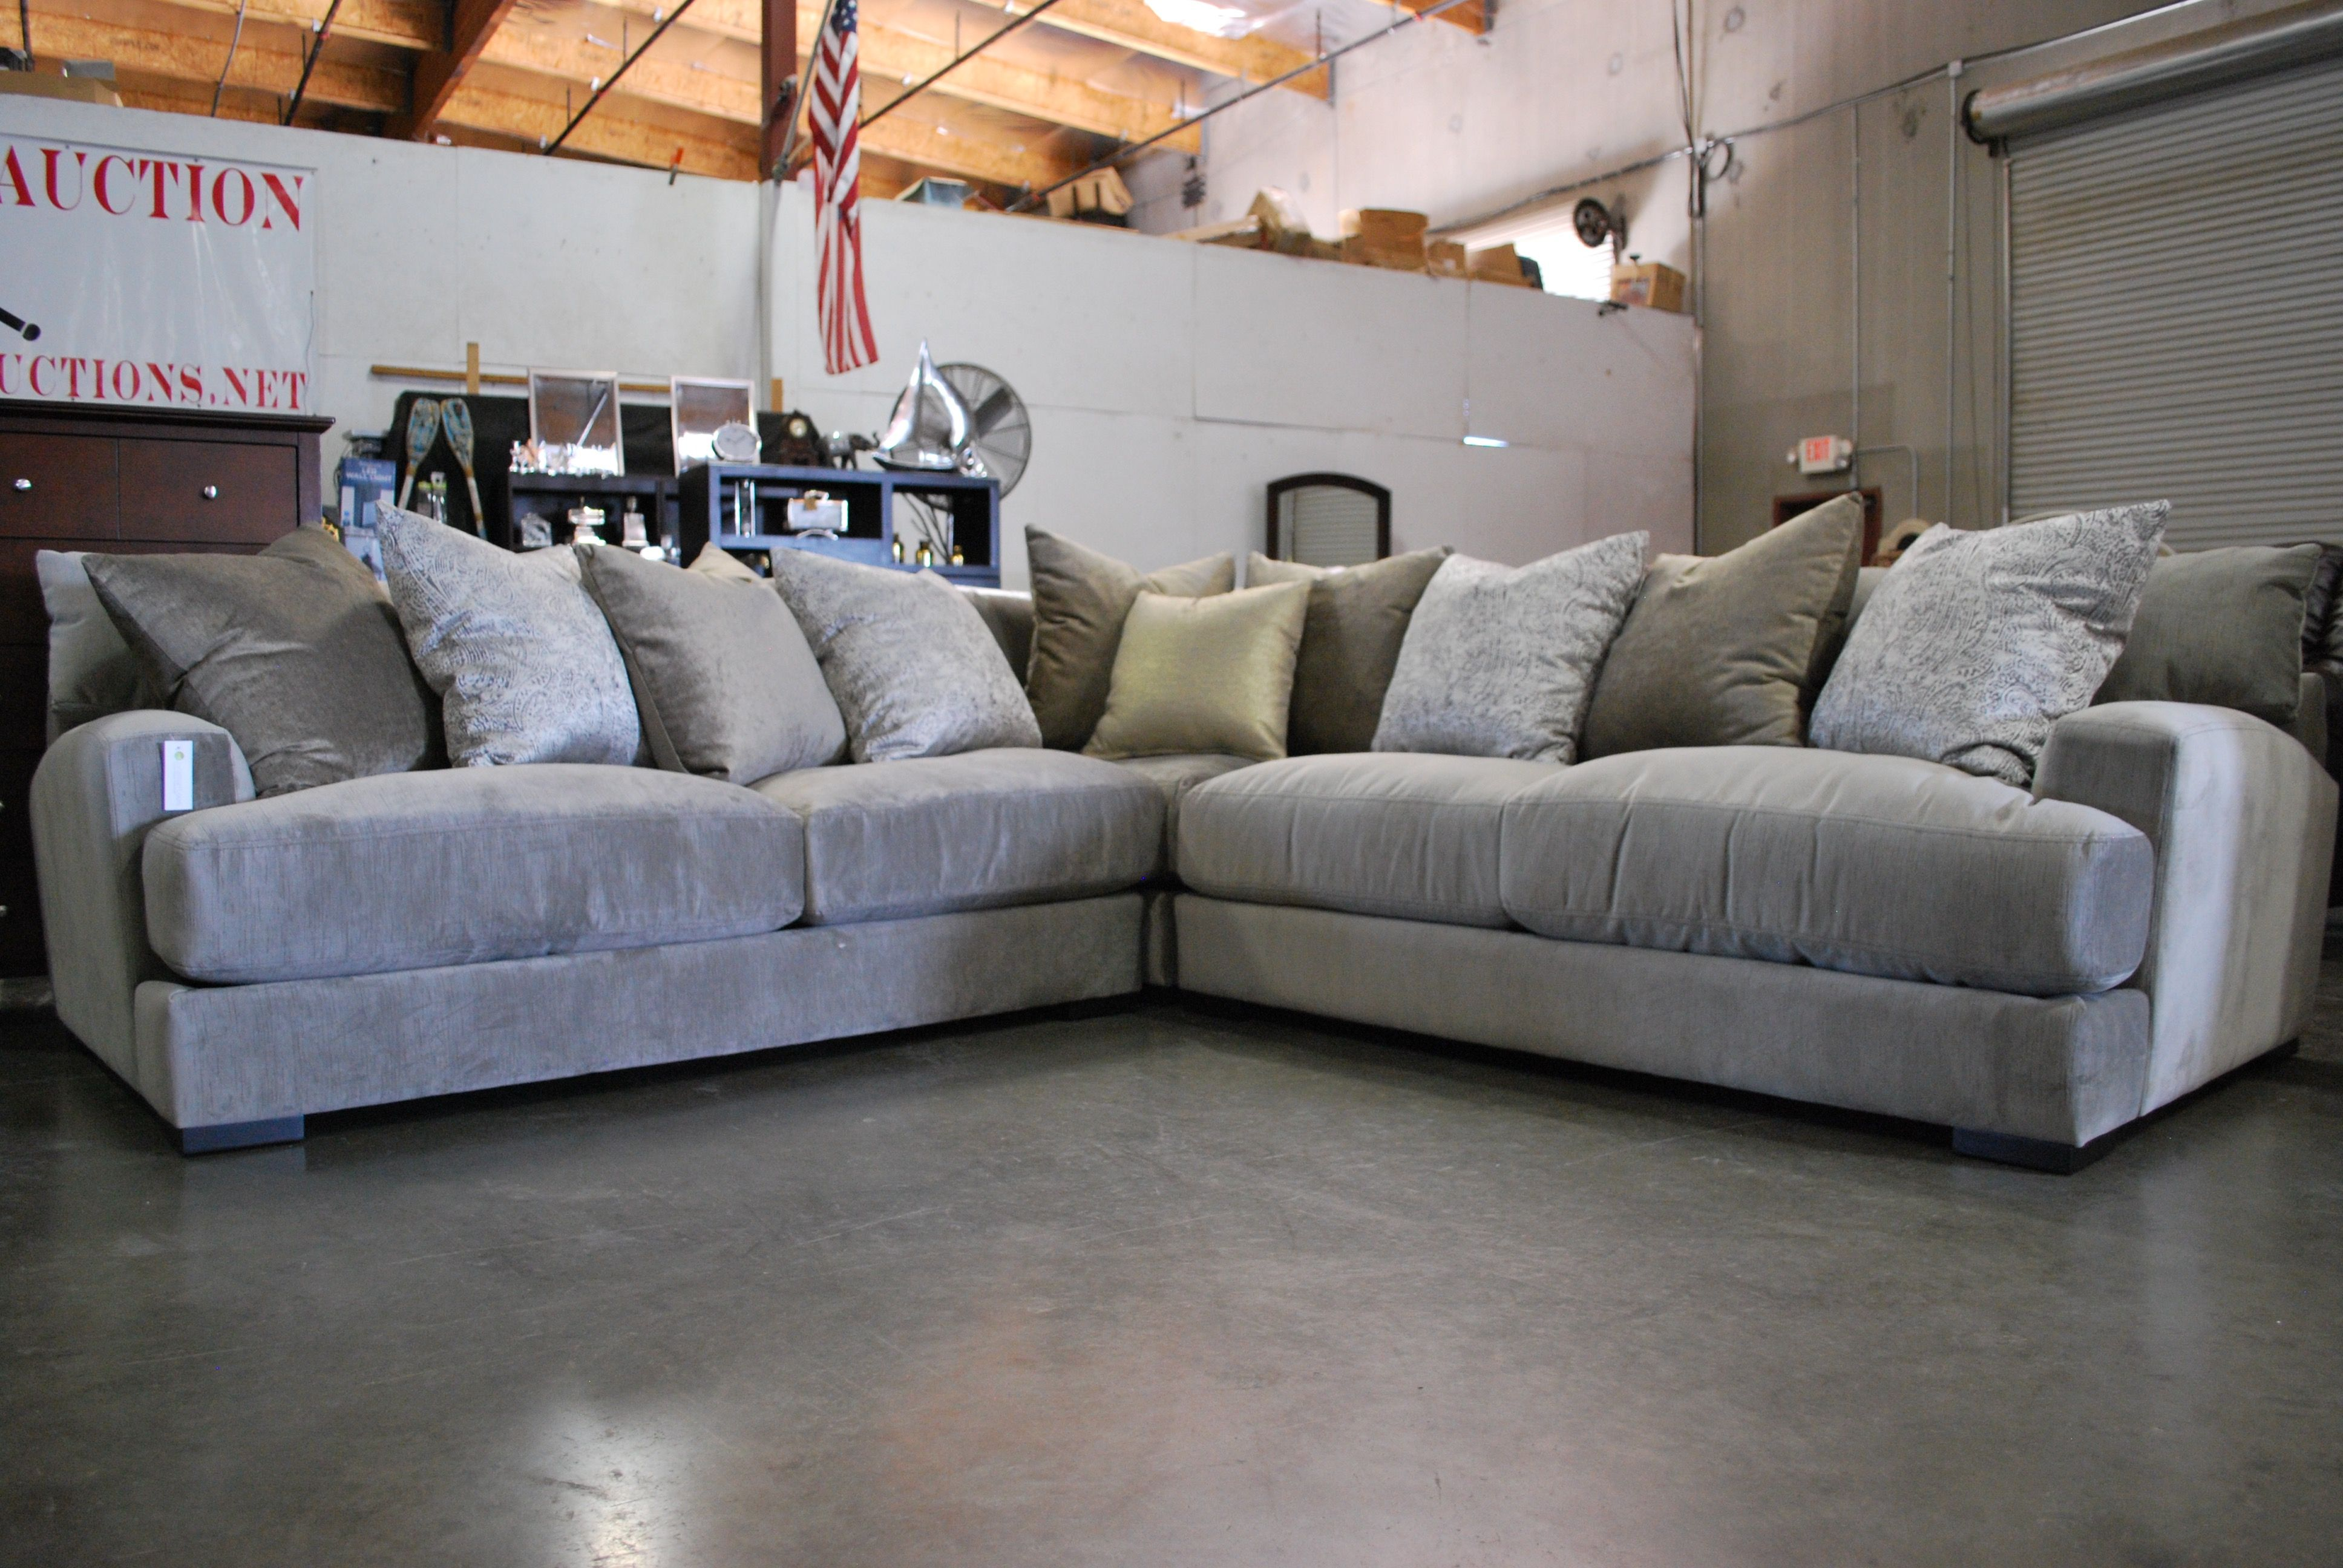 Another gorgeous Jonathan Louis sectional that you just melt into